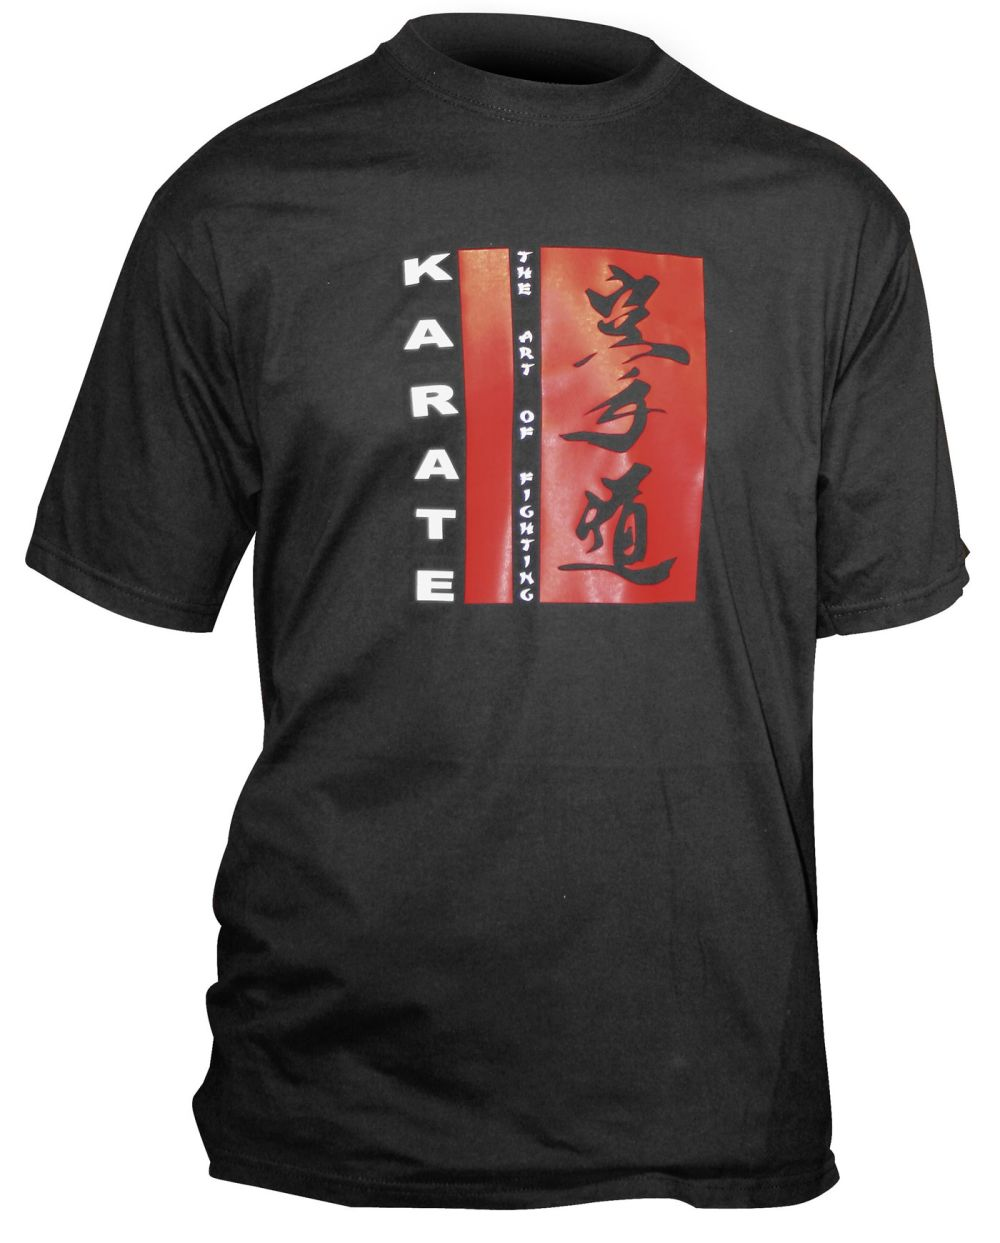 Hayashi Black/Red/White T-Shirt KARATE-DO